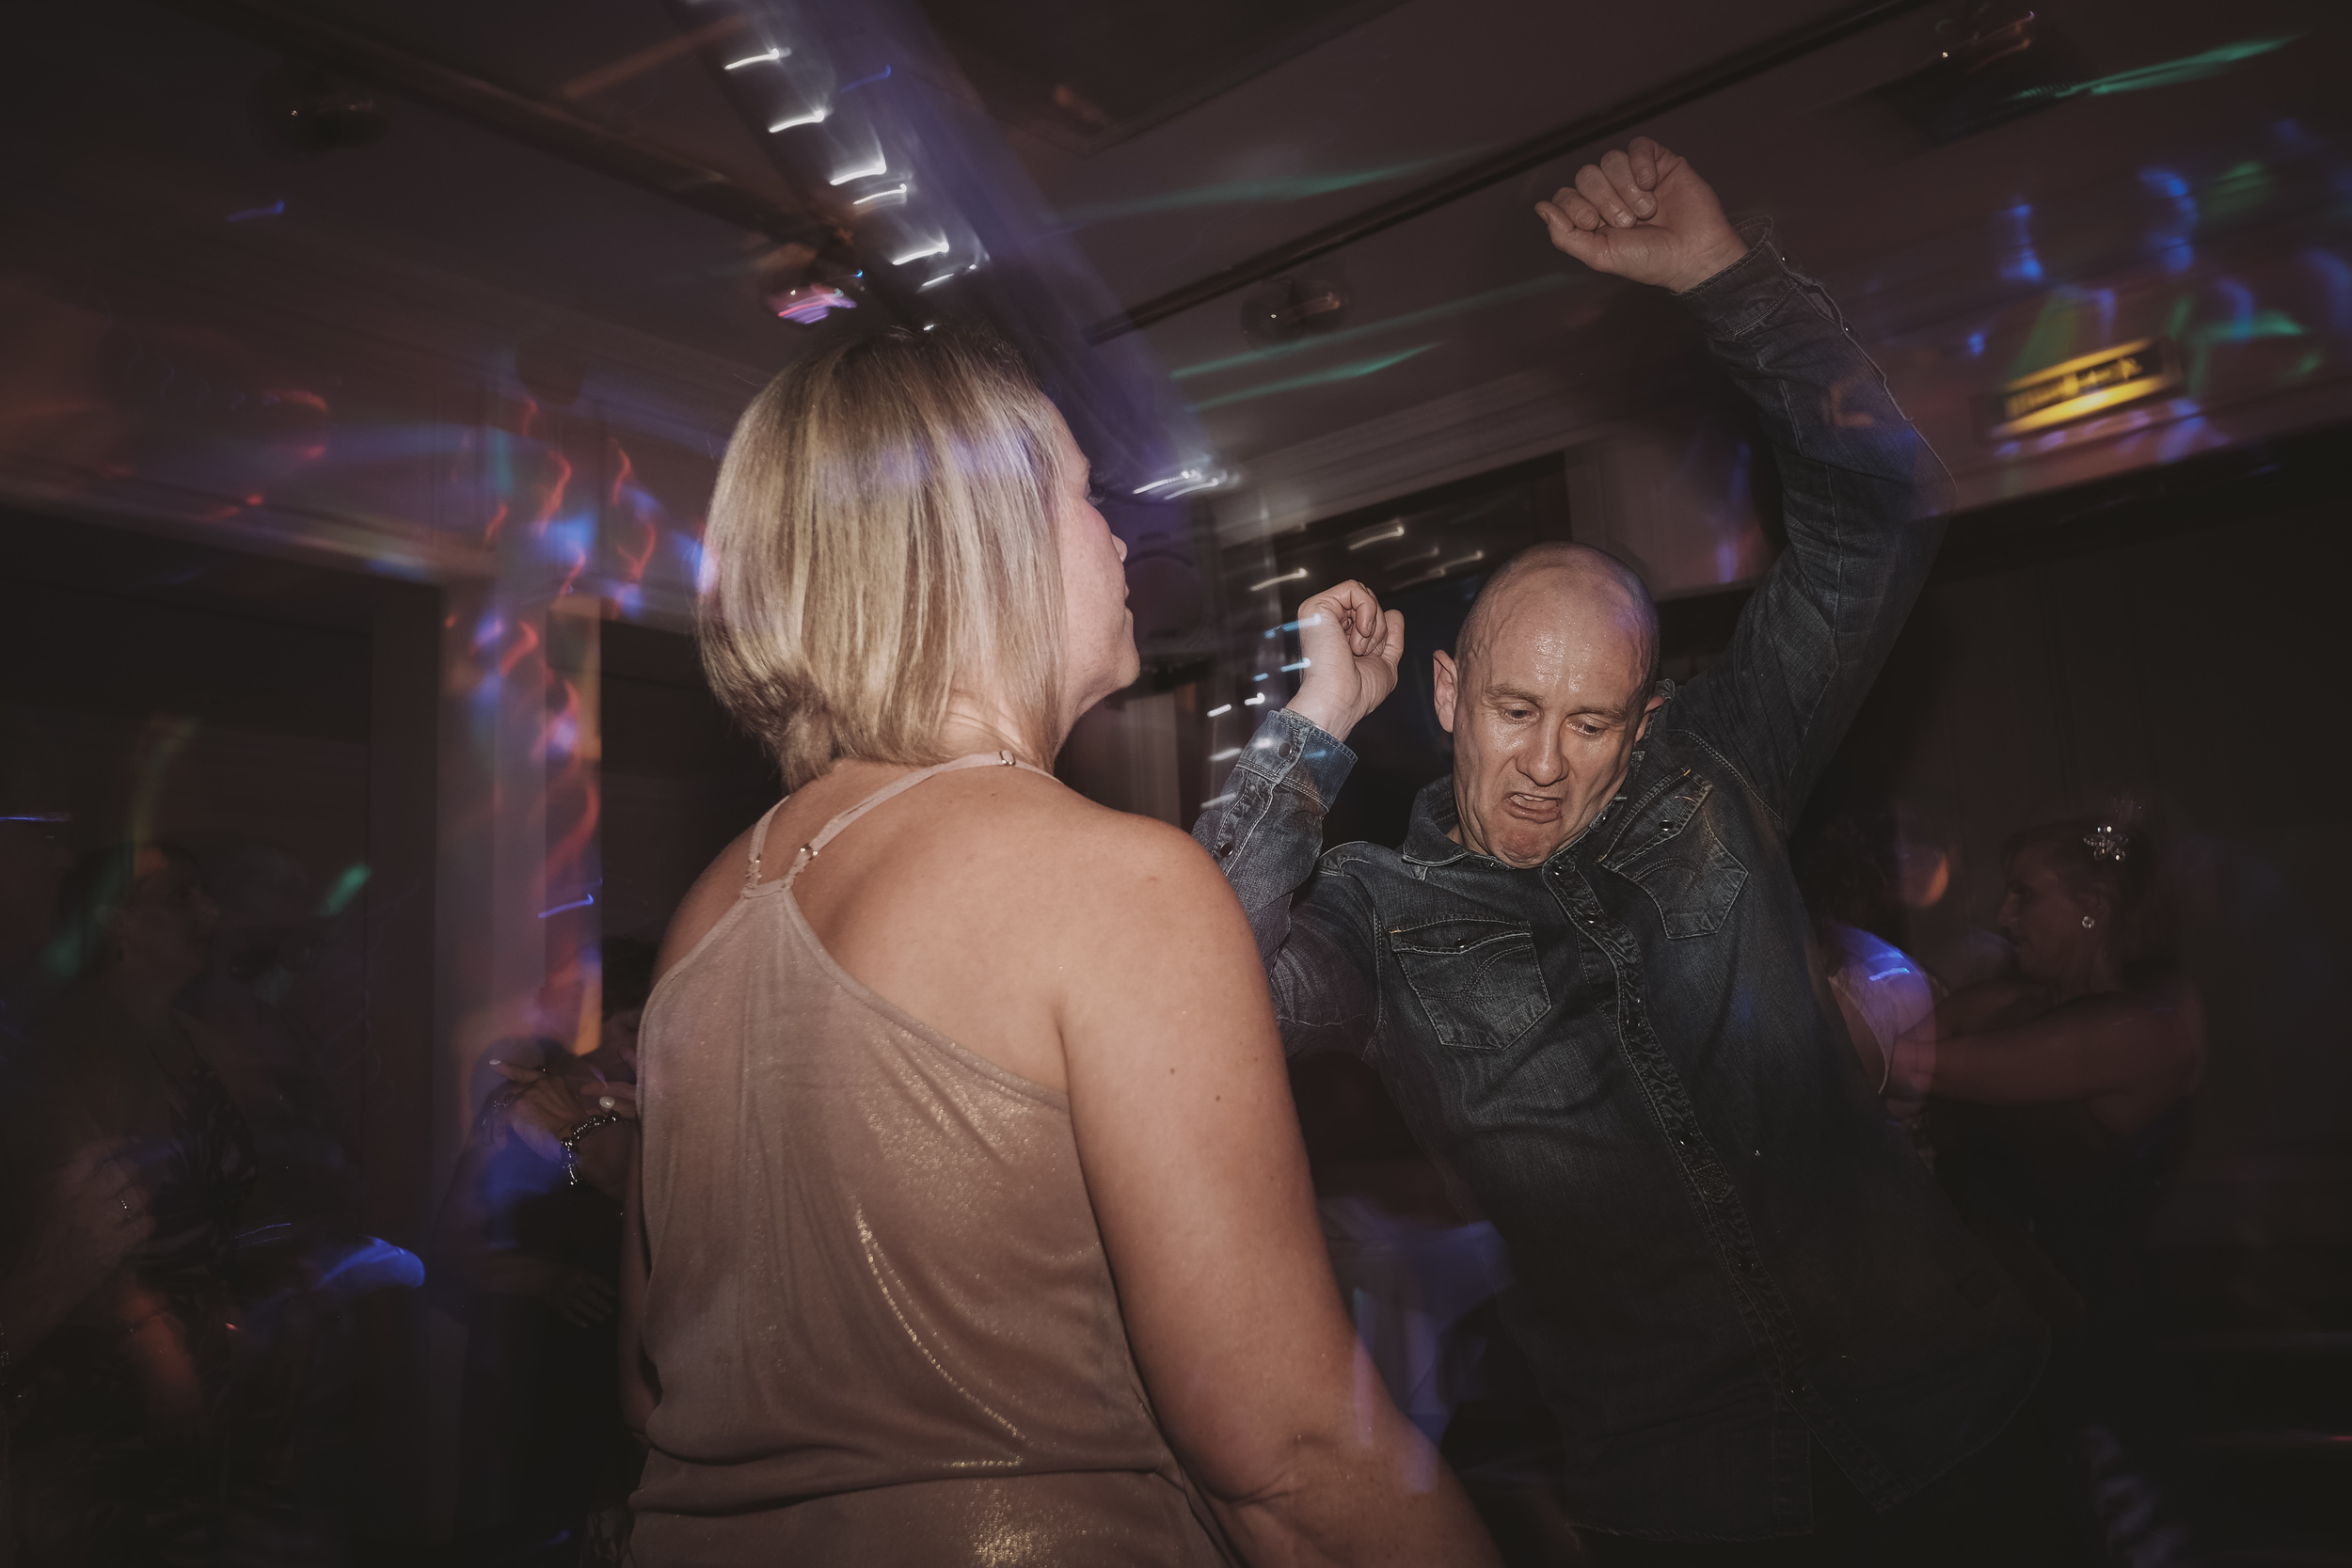 Newcastle Wedding Photographer // Couple busting out moves on wedding dancefloor